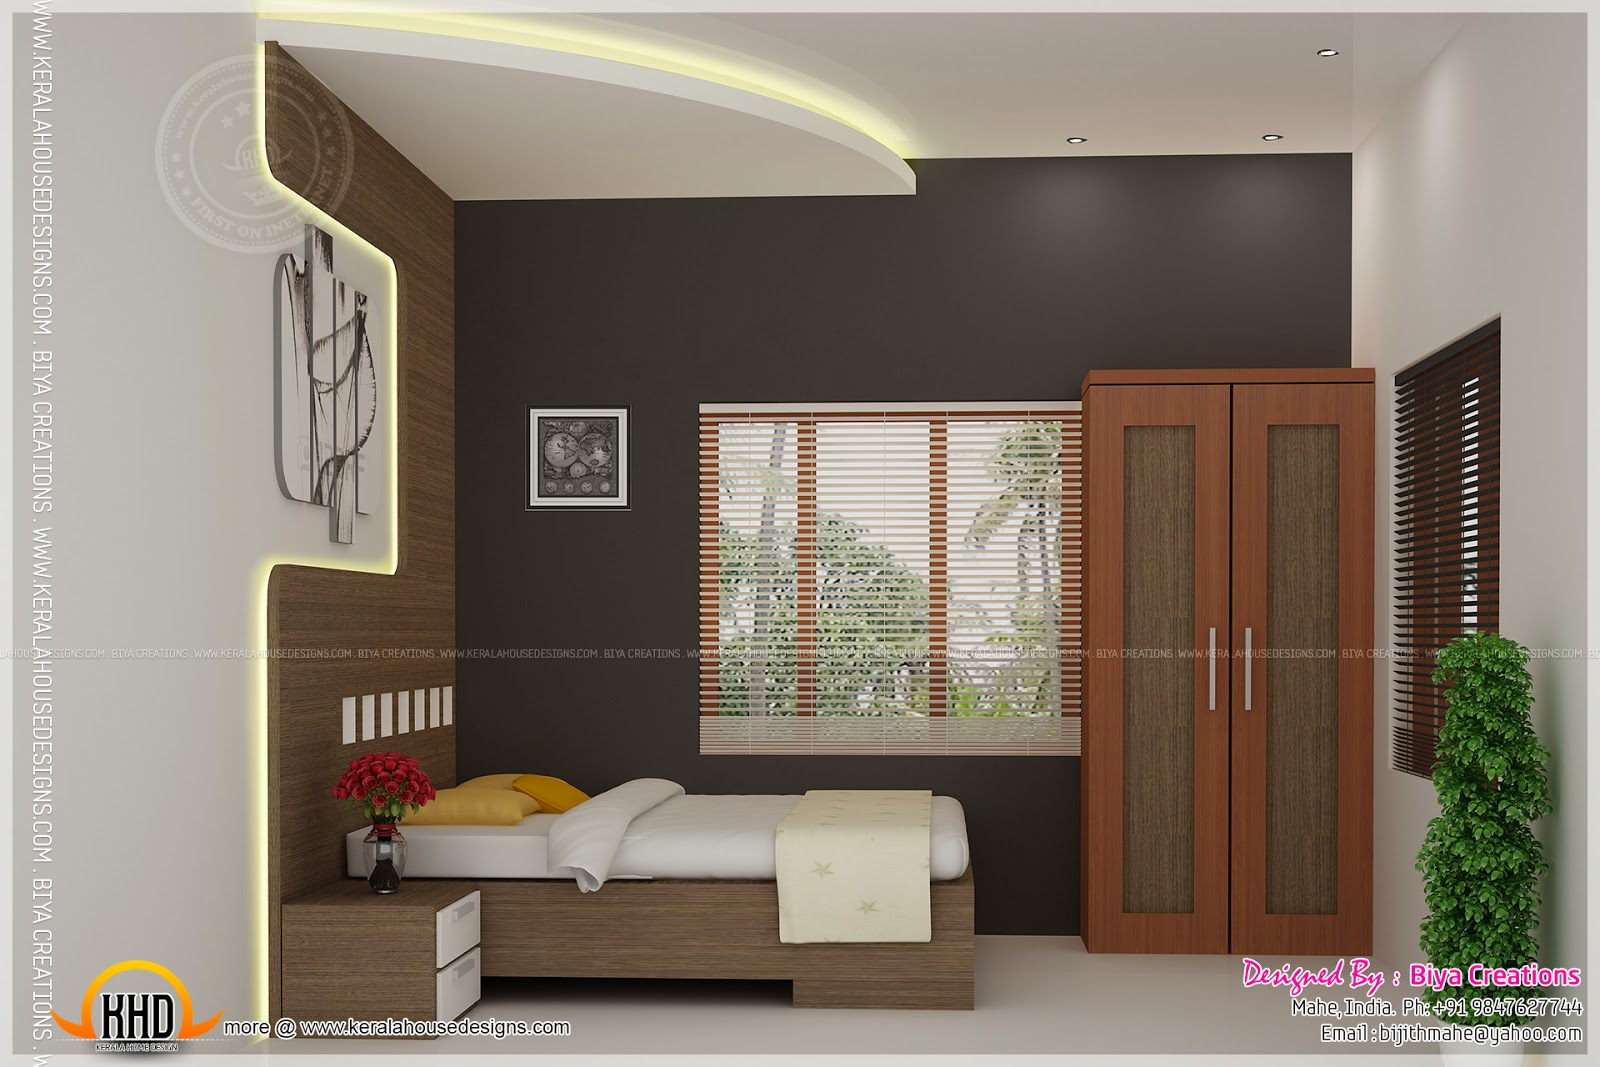 Bedroom kid bedroom and kitchen interior kerala home for Beautiful houses and interior designs